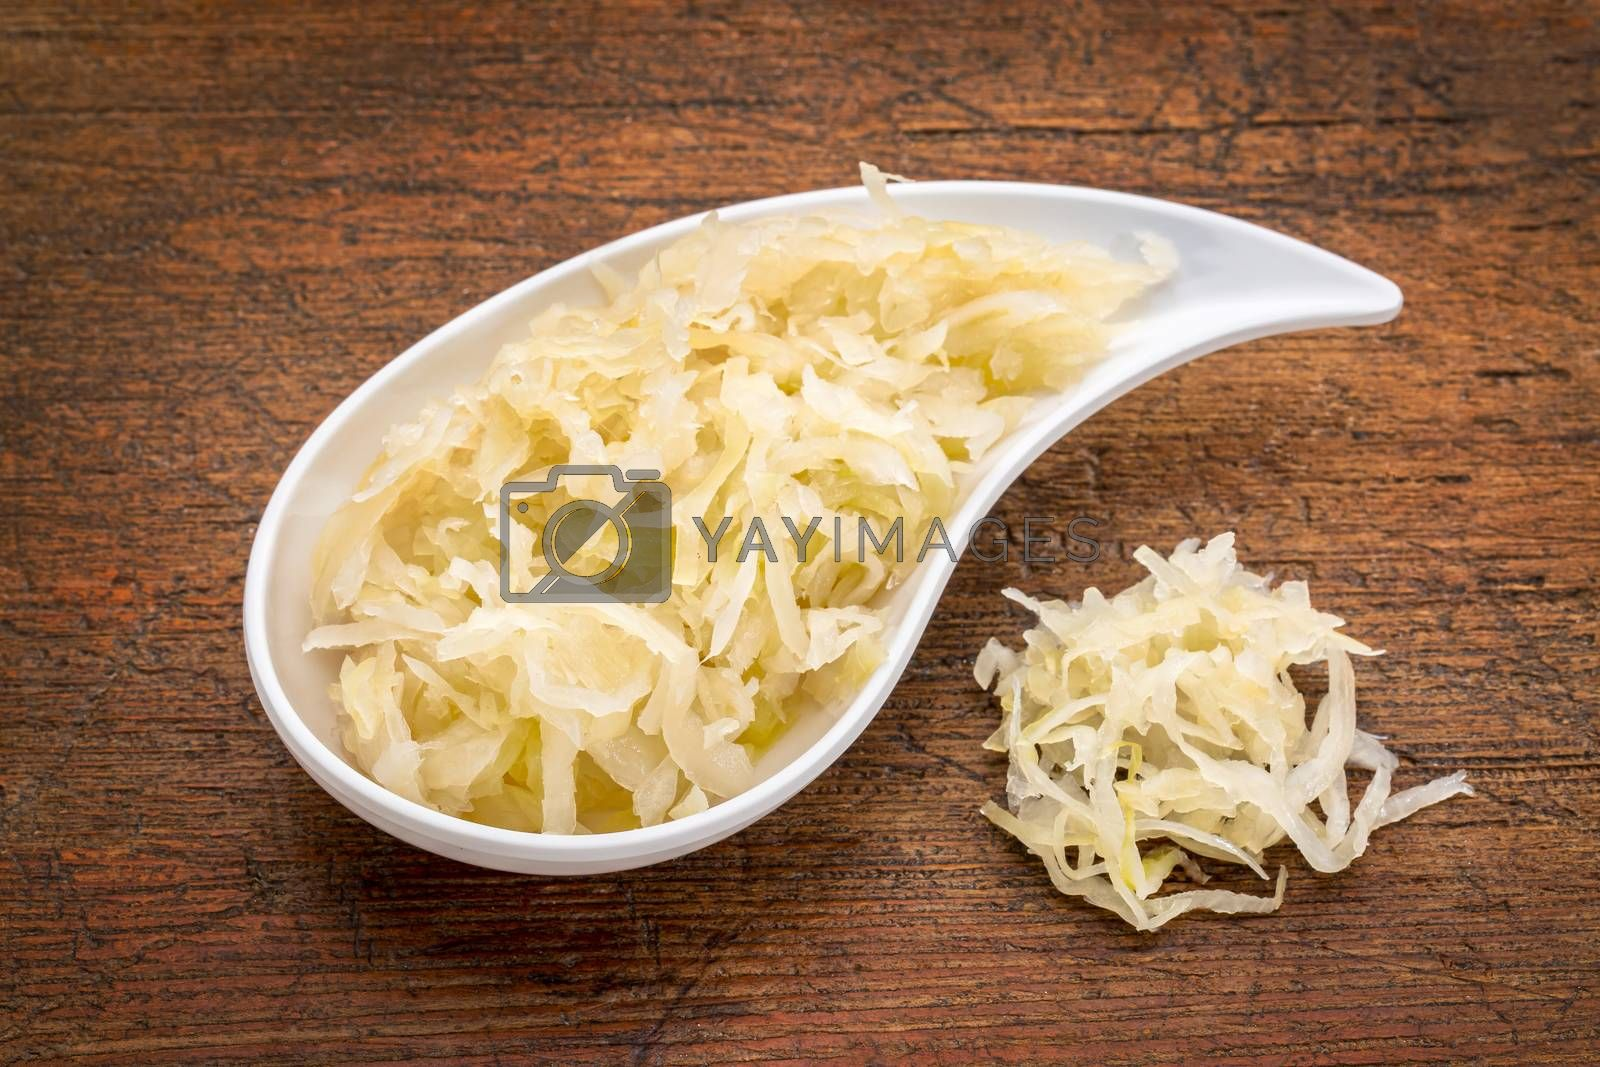 teardrop shaped bowl of sauerkraut against rustic wood - healthy eating concept